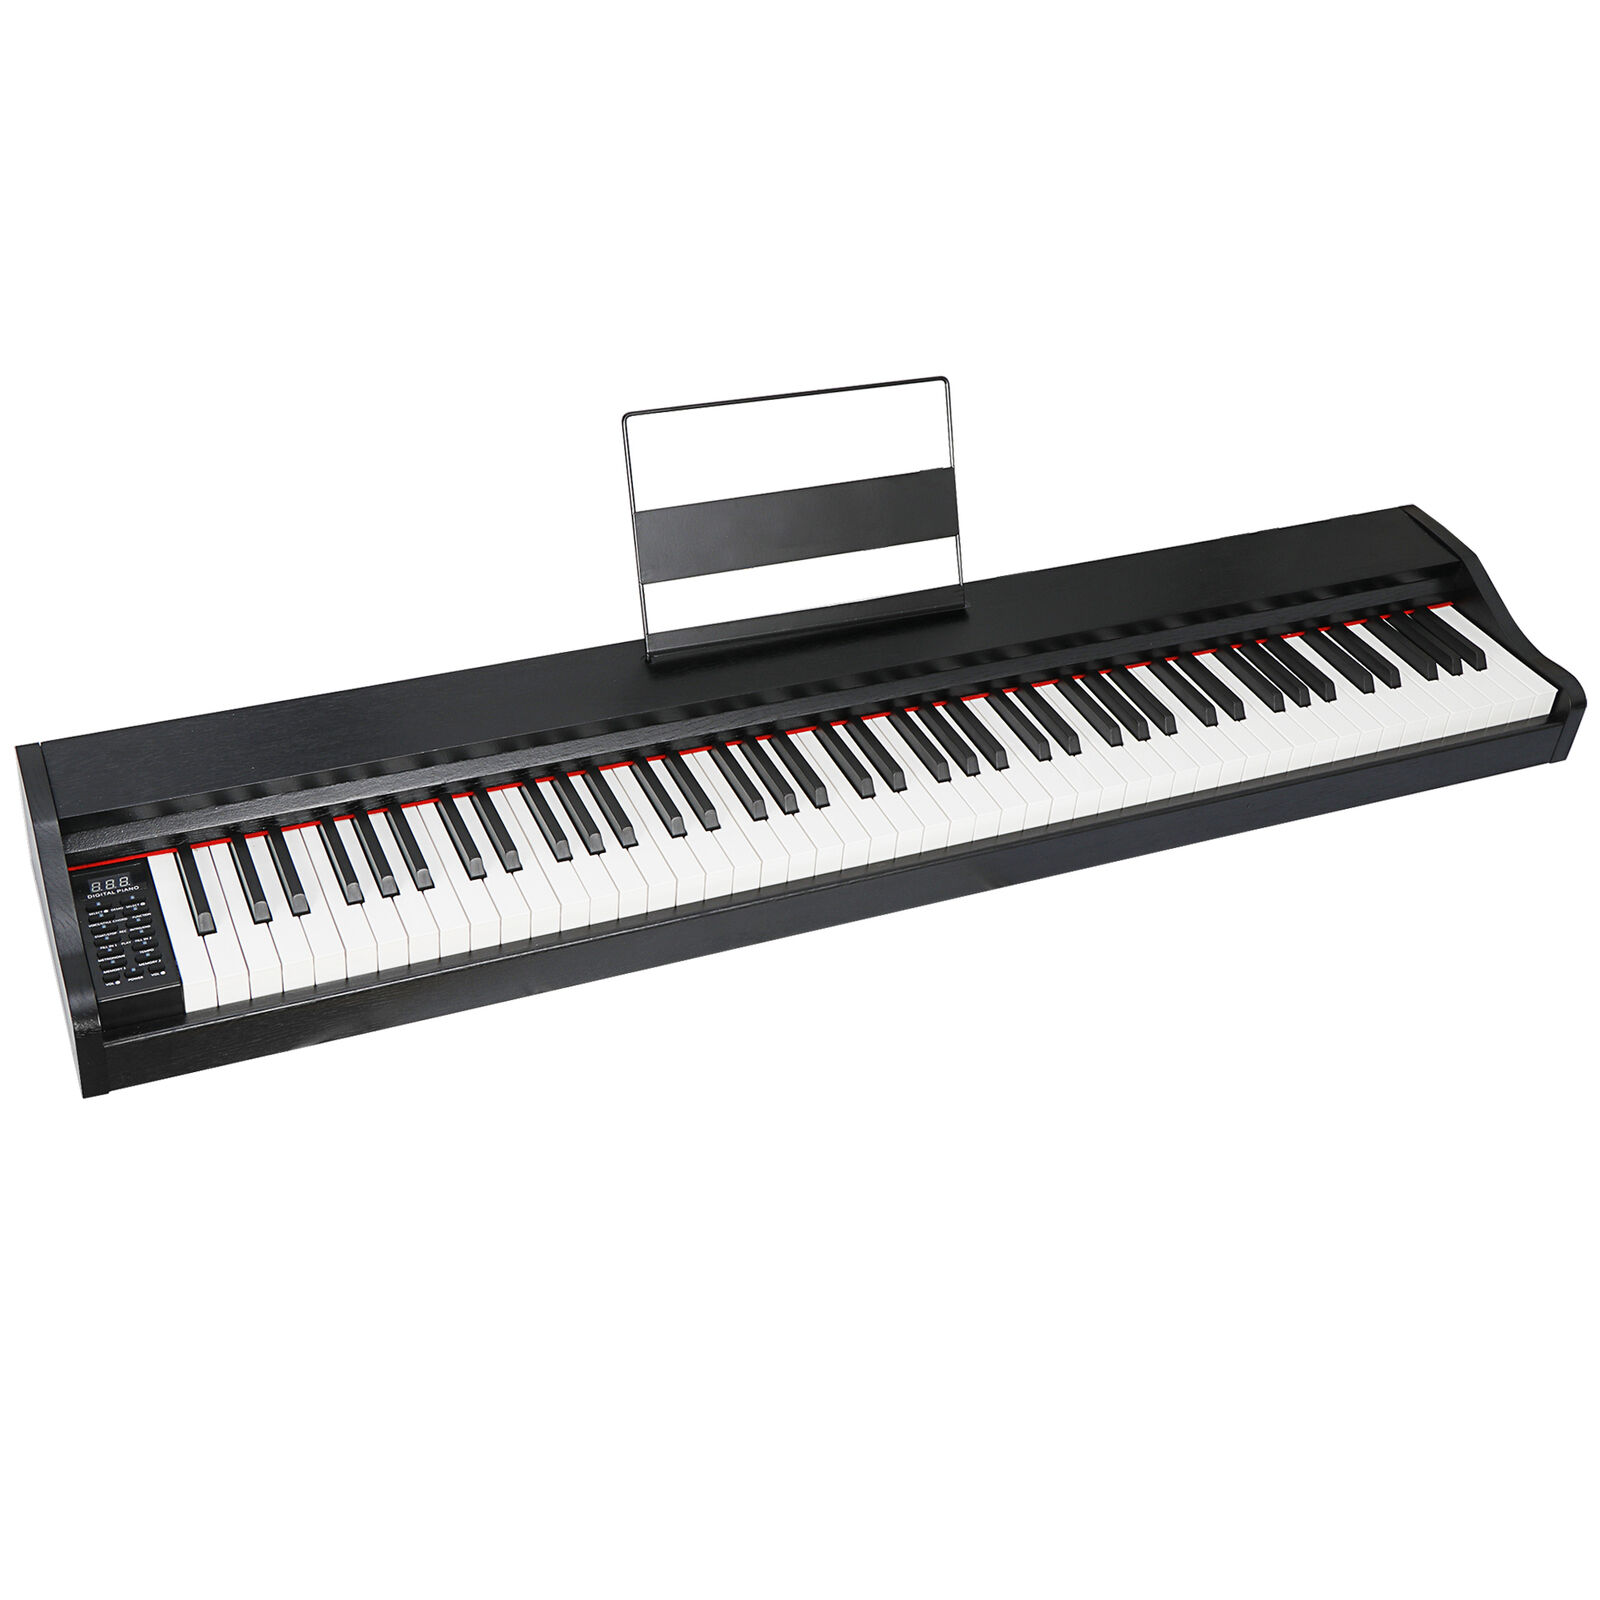 88 Key Music Electronic Keyboard Electric Digital Piano Black with Speakers Electronic Keyboards